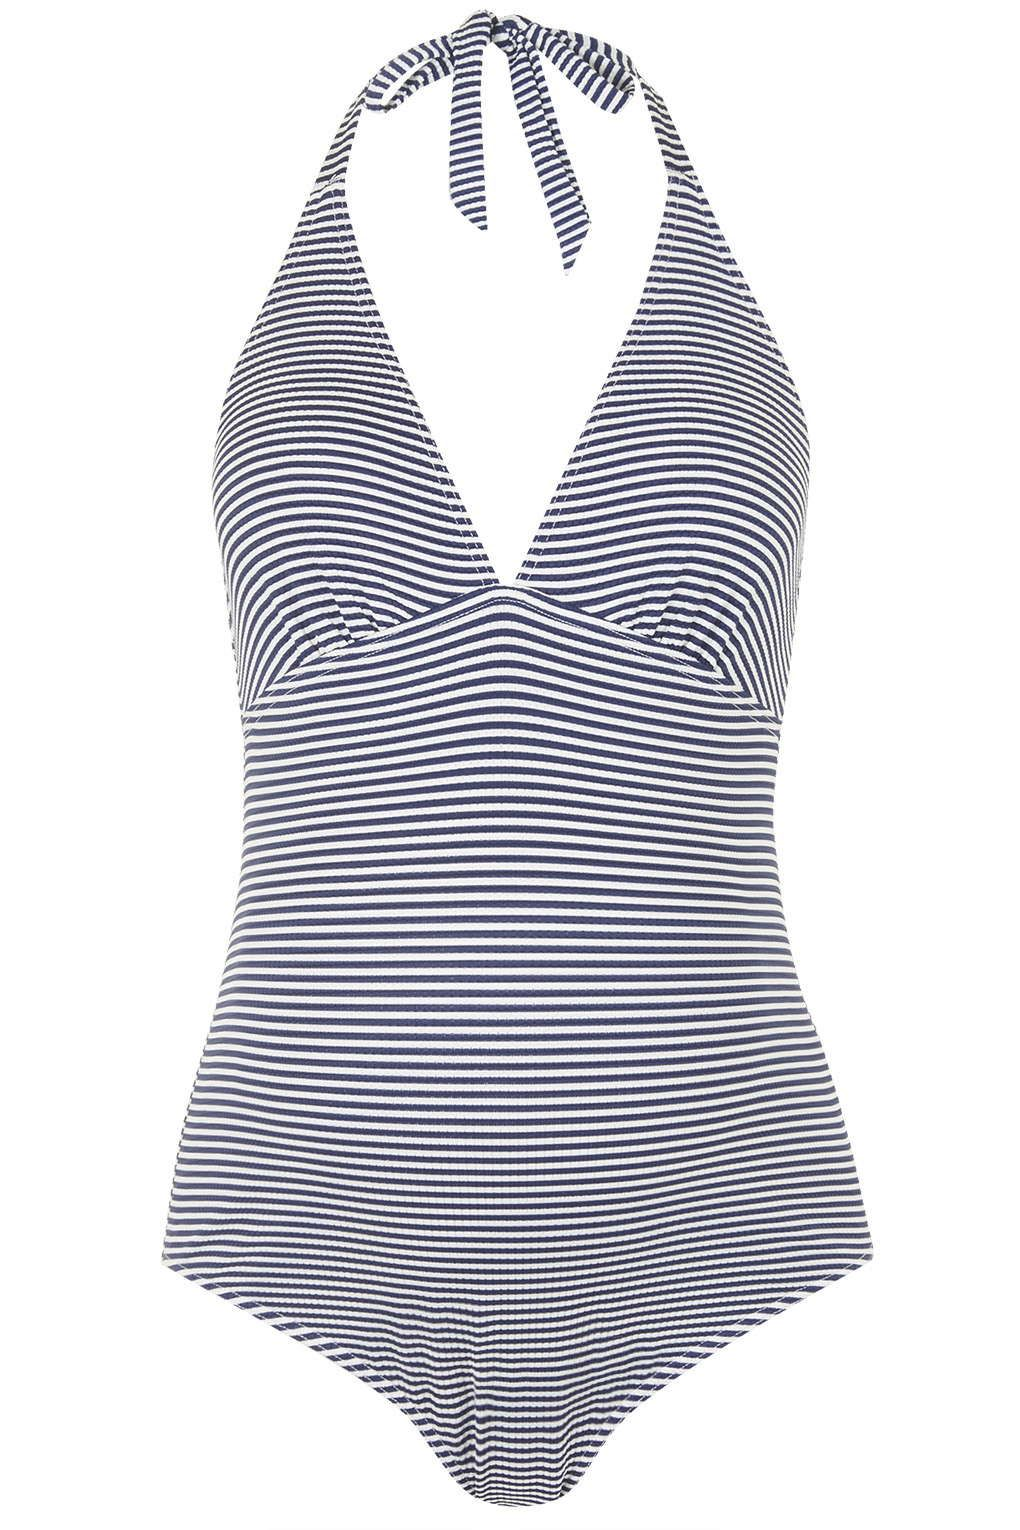 41dc77a1db6a6 Maternity Textured Stripe Swimsuit | Baby Hoelscher | Maternity ...